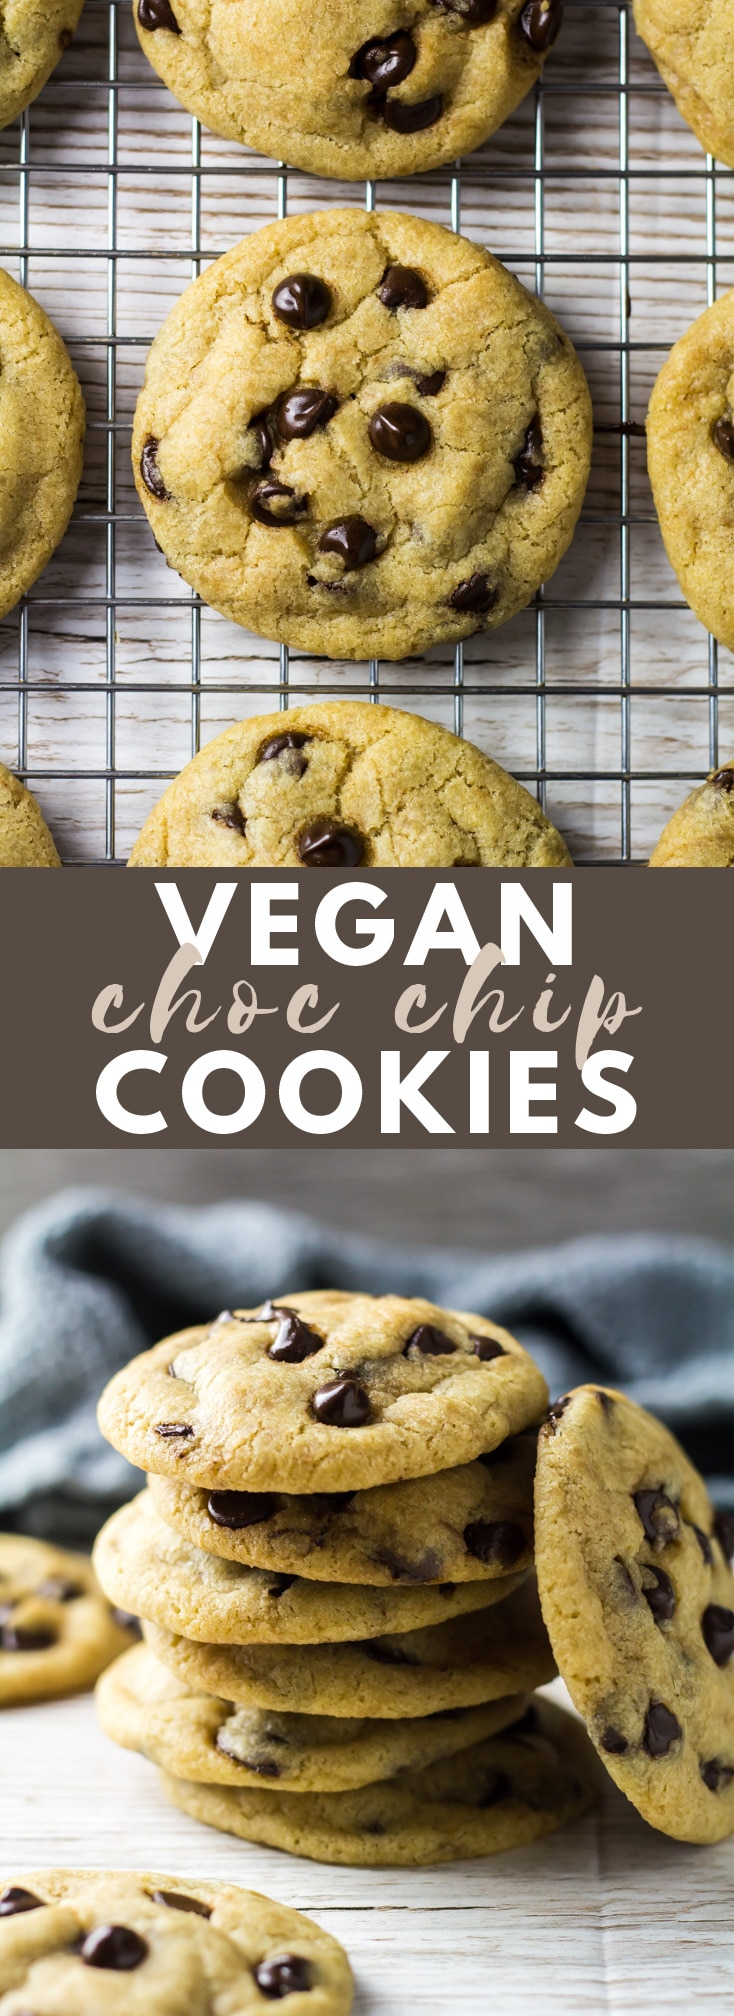 Vegan Chocolate Chip Cookies - Deliciously thick, soft and chewy chocolate chip cookies that are super easy to make, and are vegan-friendly!